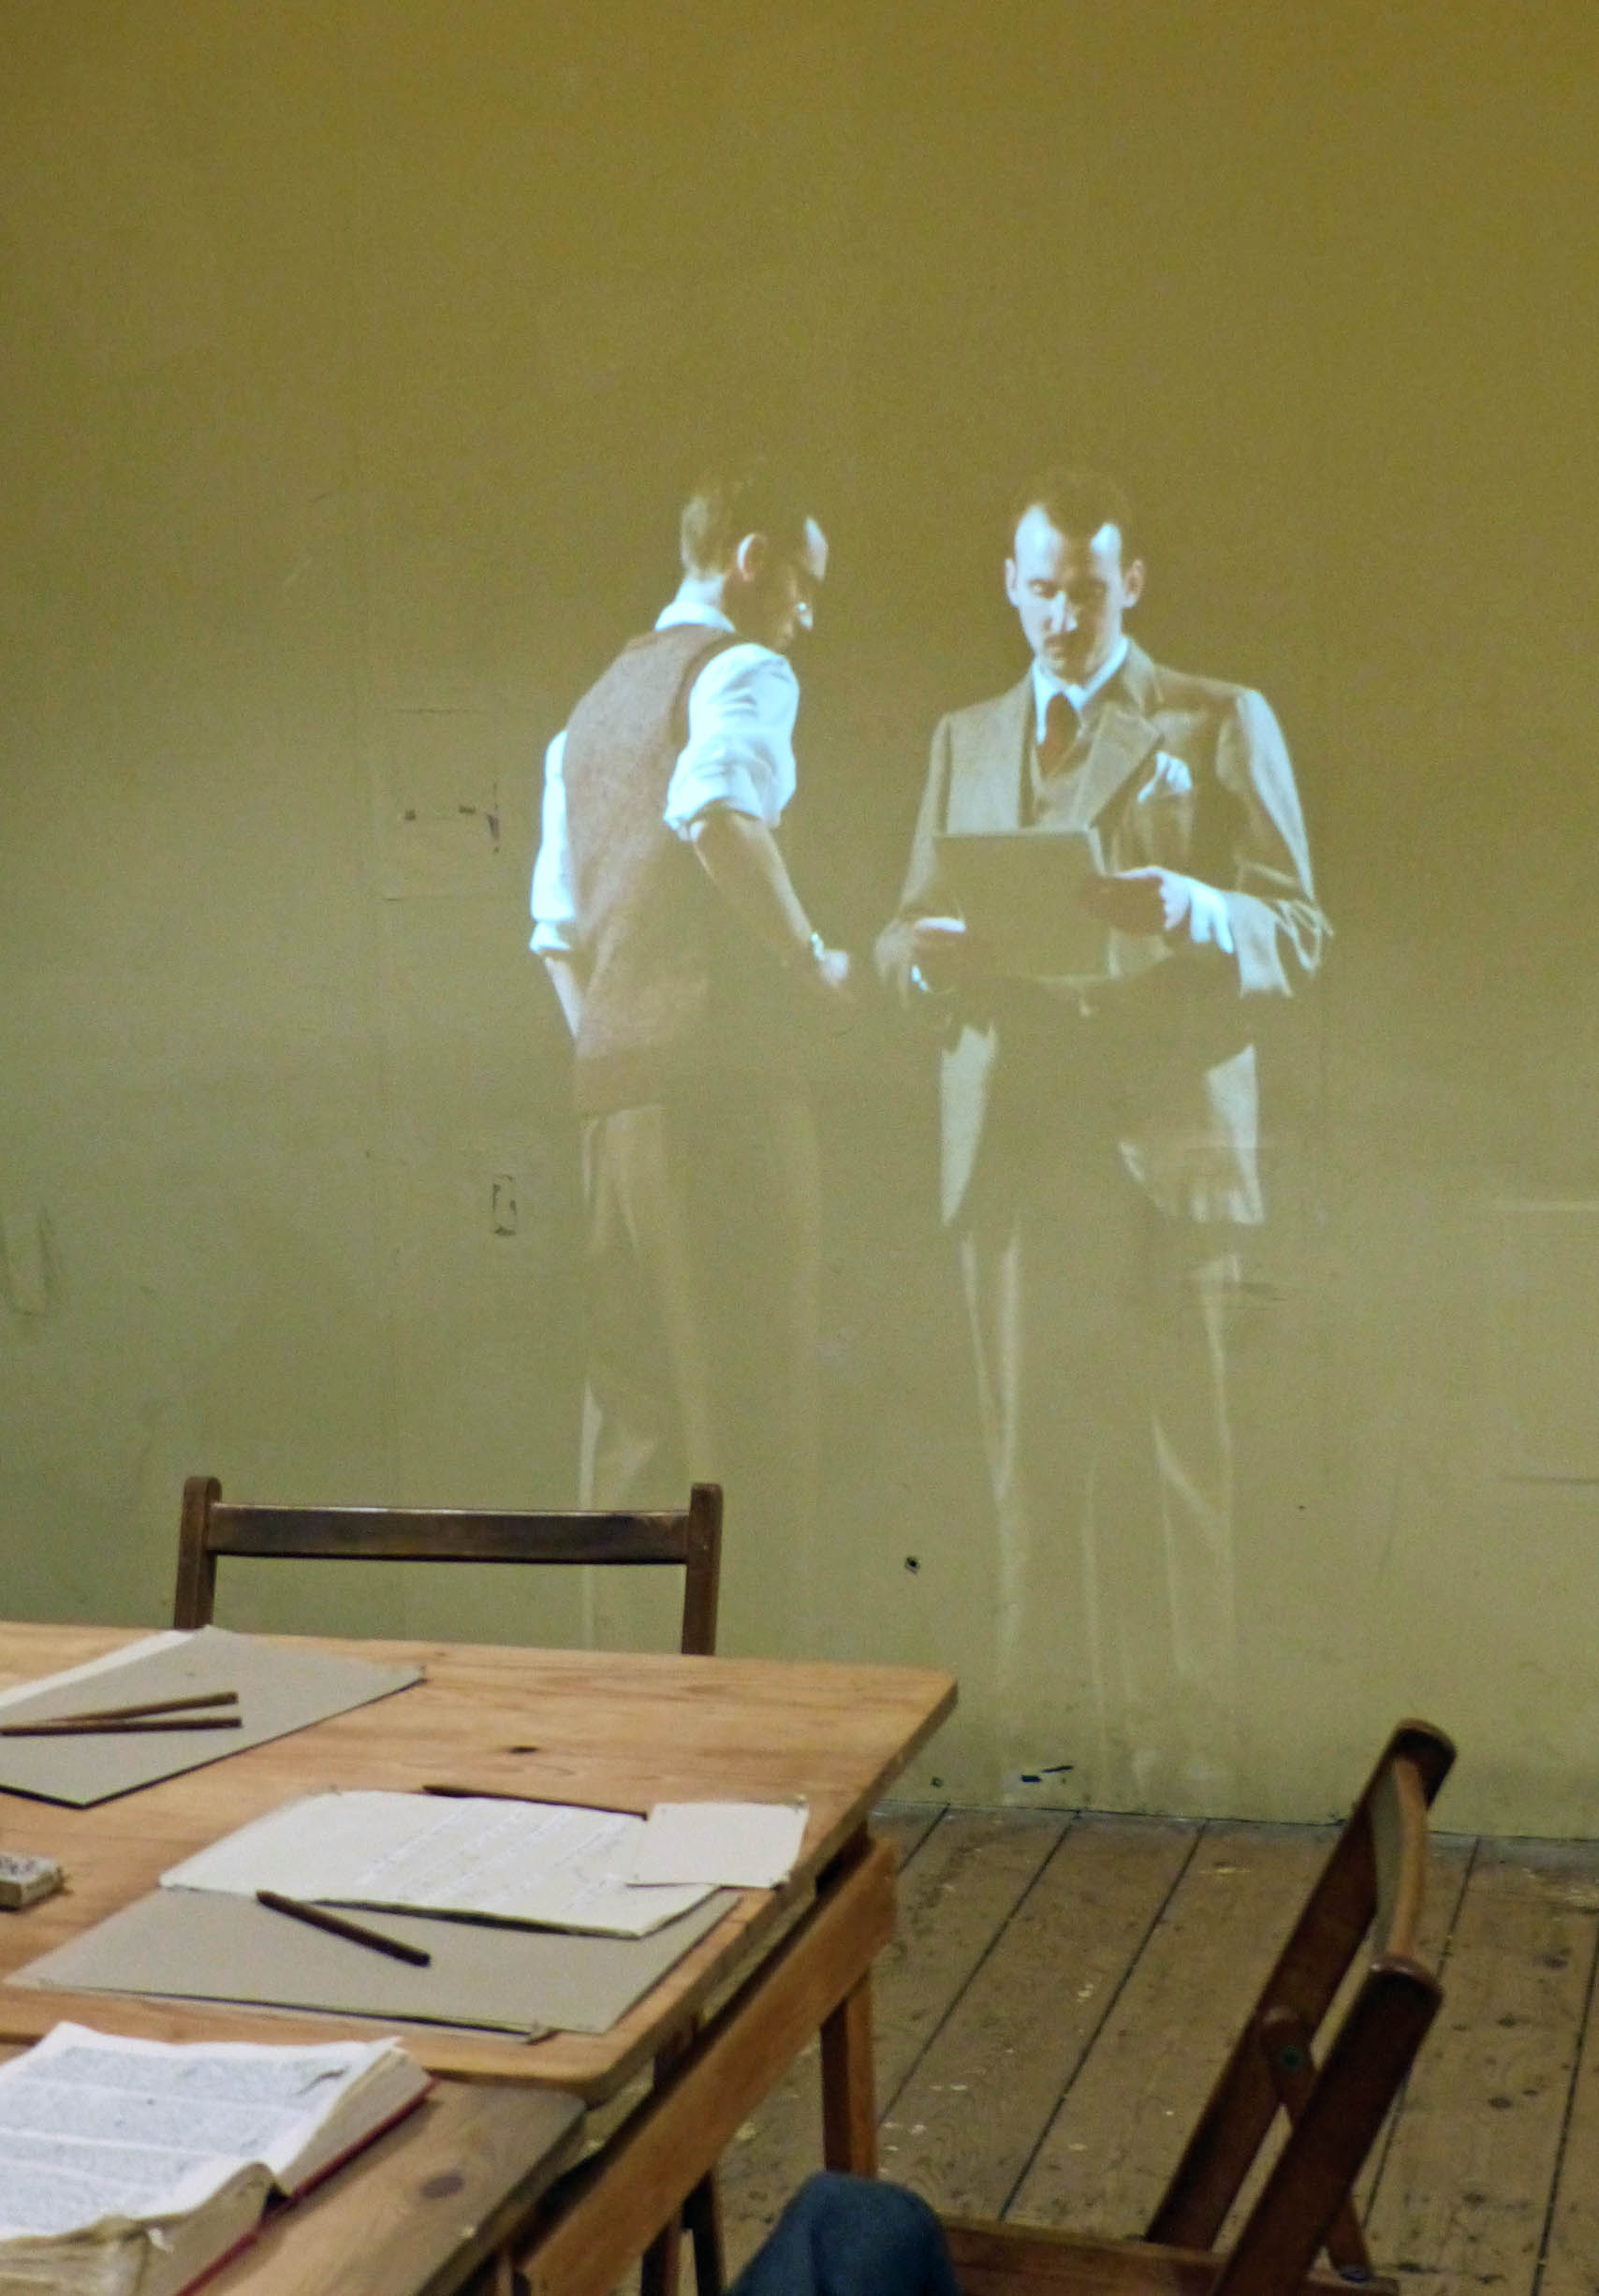 Projection on a wall of two men in 1940s clothing